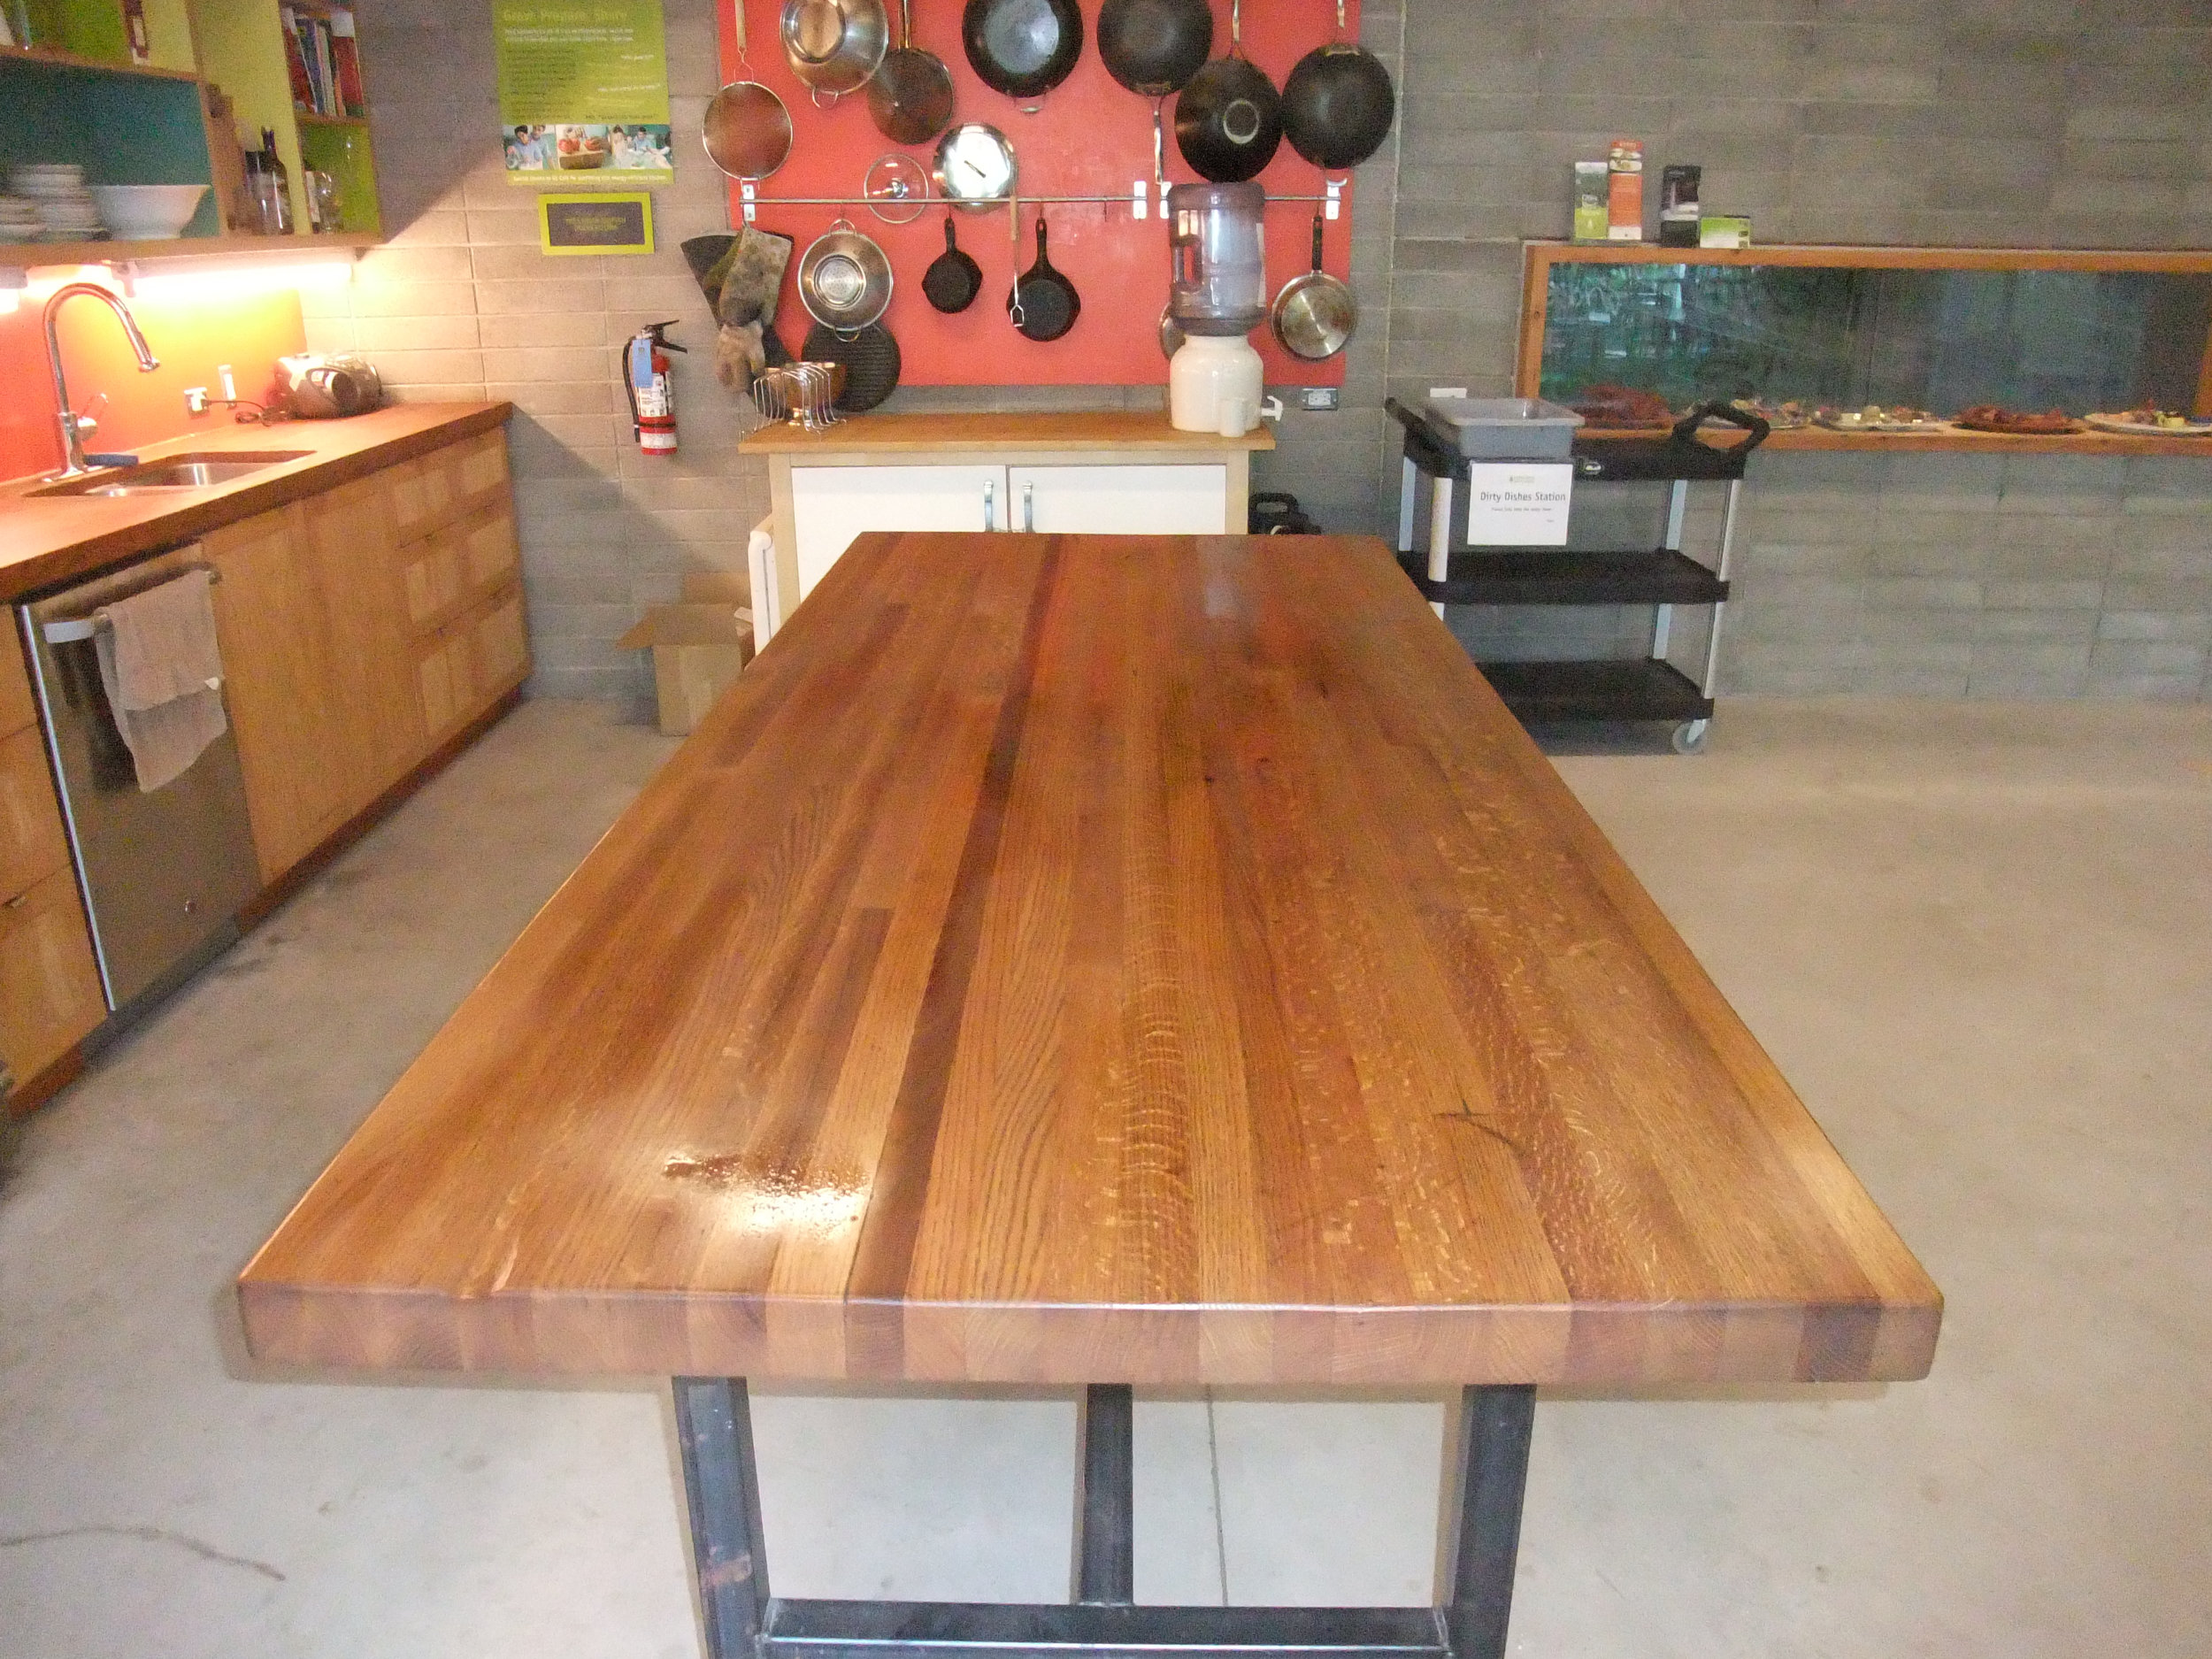 BeReclaimed - Reclaimed Wood Table - Oak from Pearson Airport with Custom Welded Steel Frame at Evergreen Brick Works.jpg